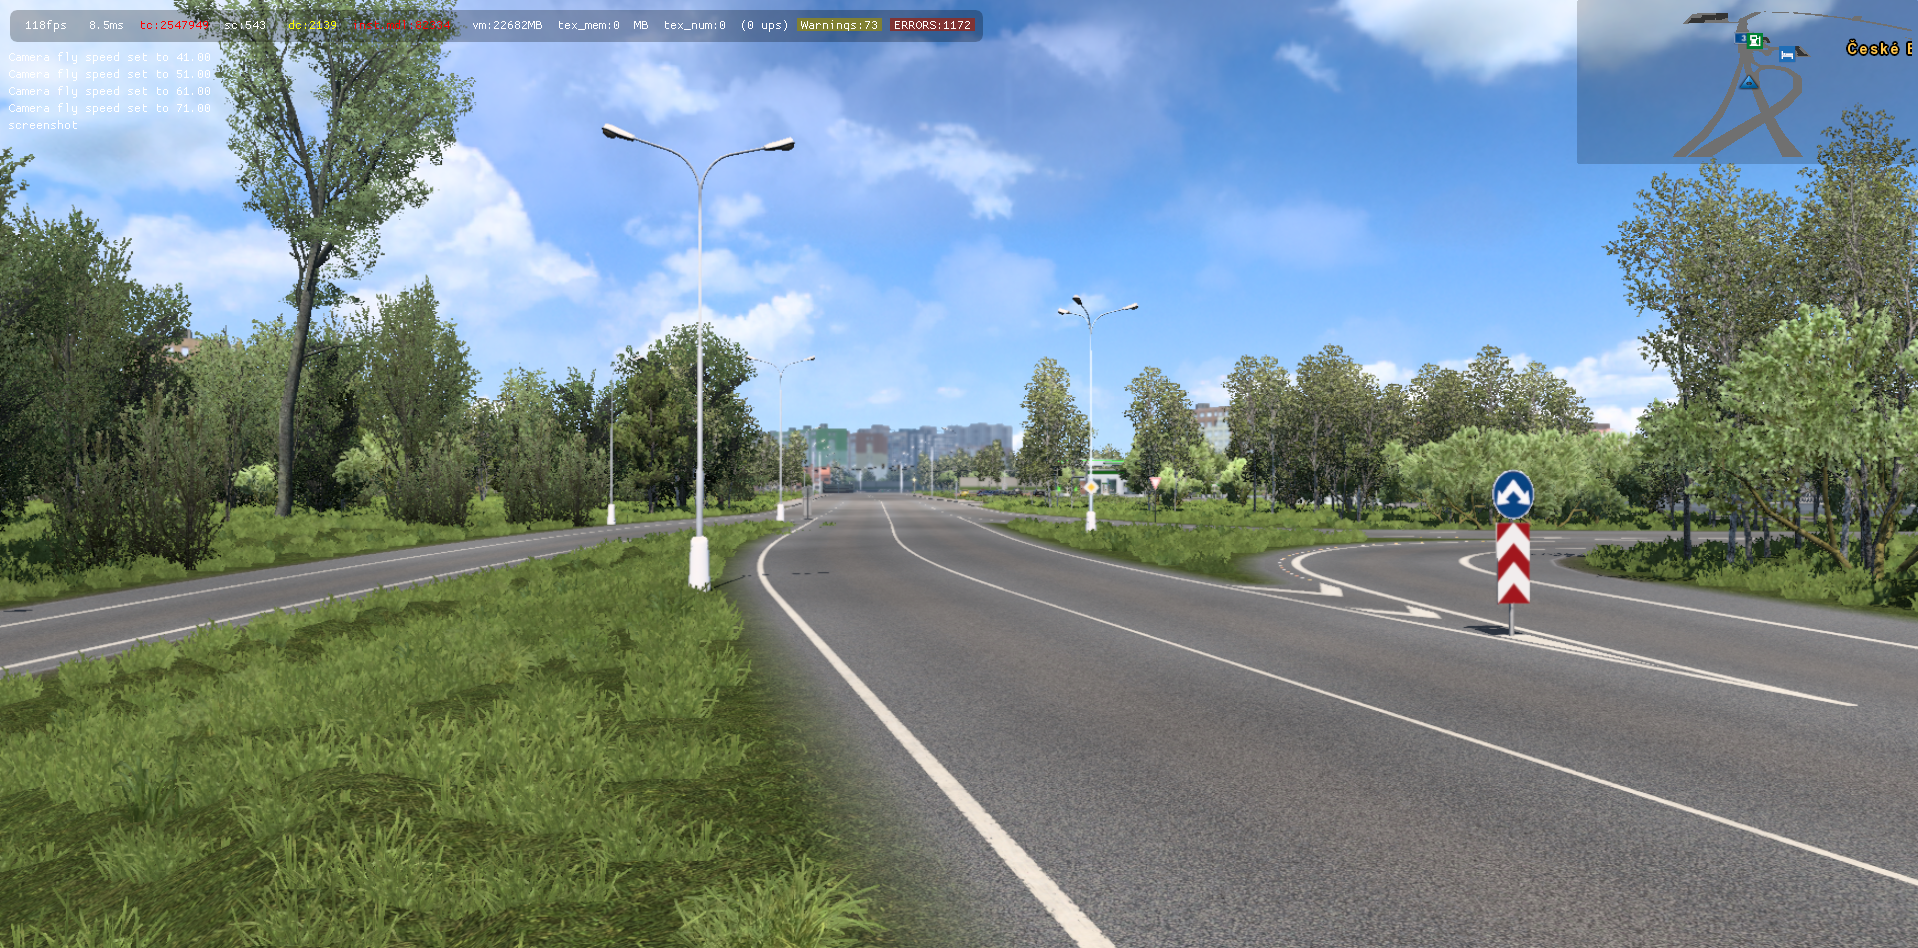 ets2_20210817_225738_00.png